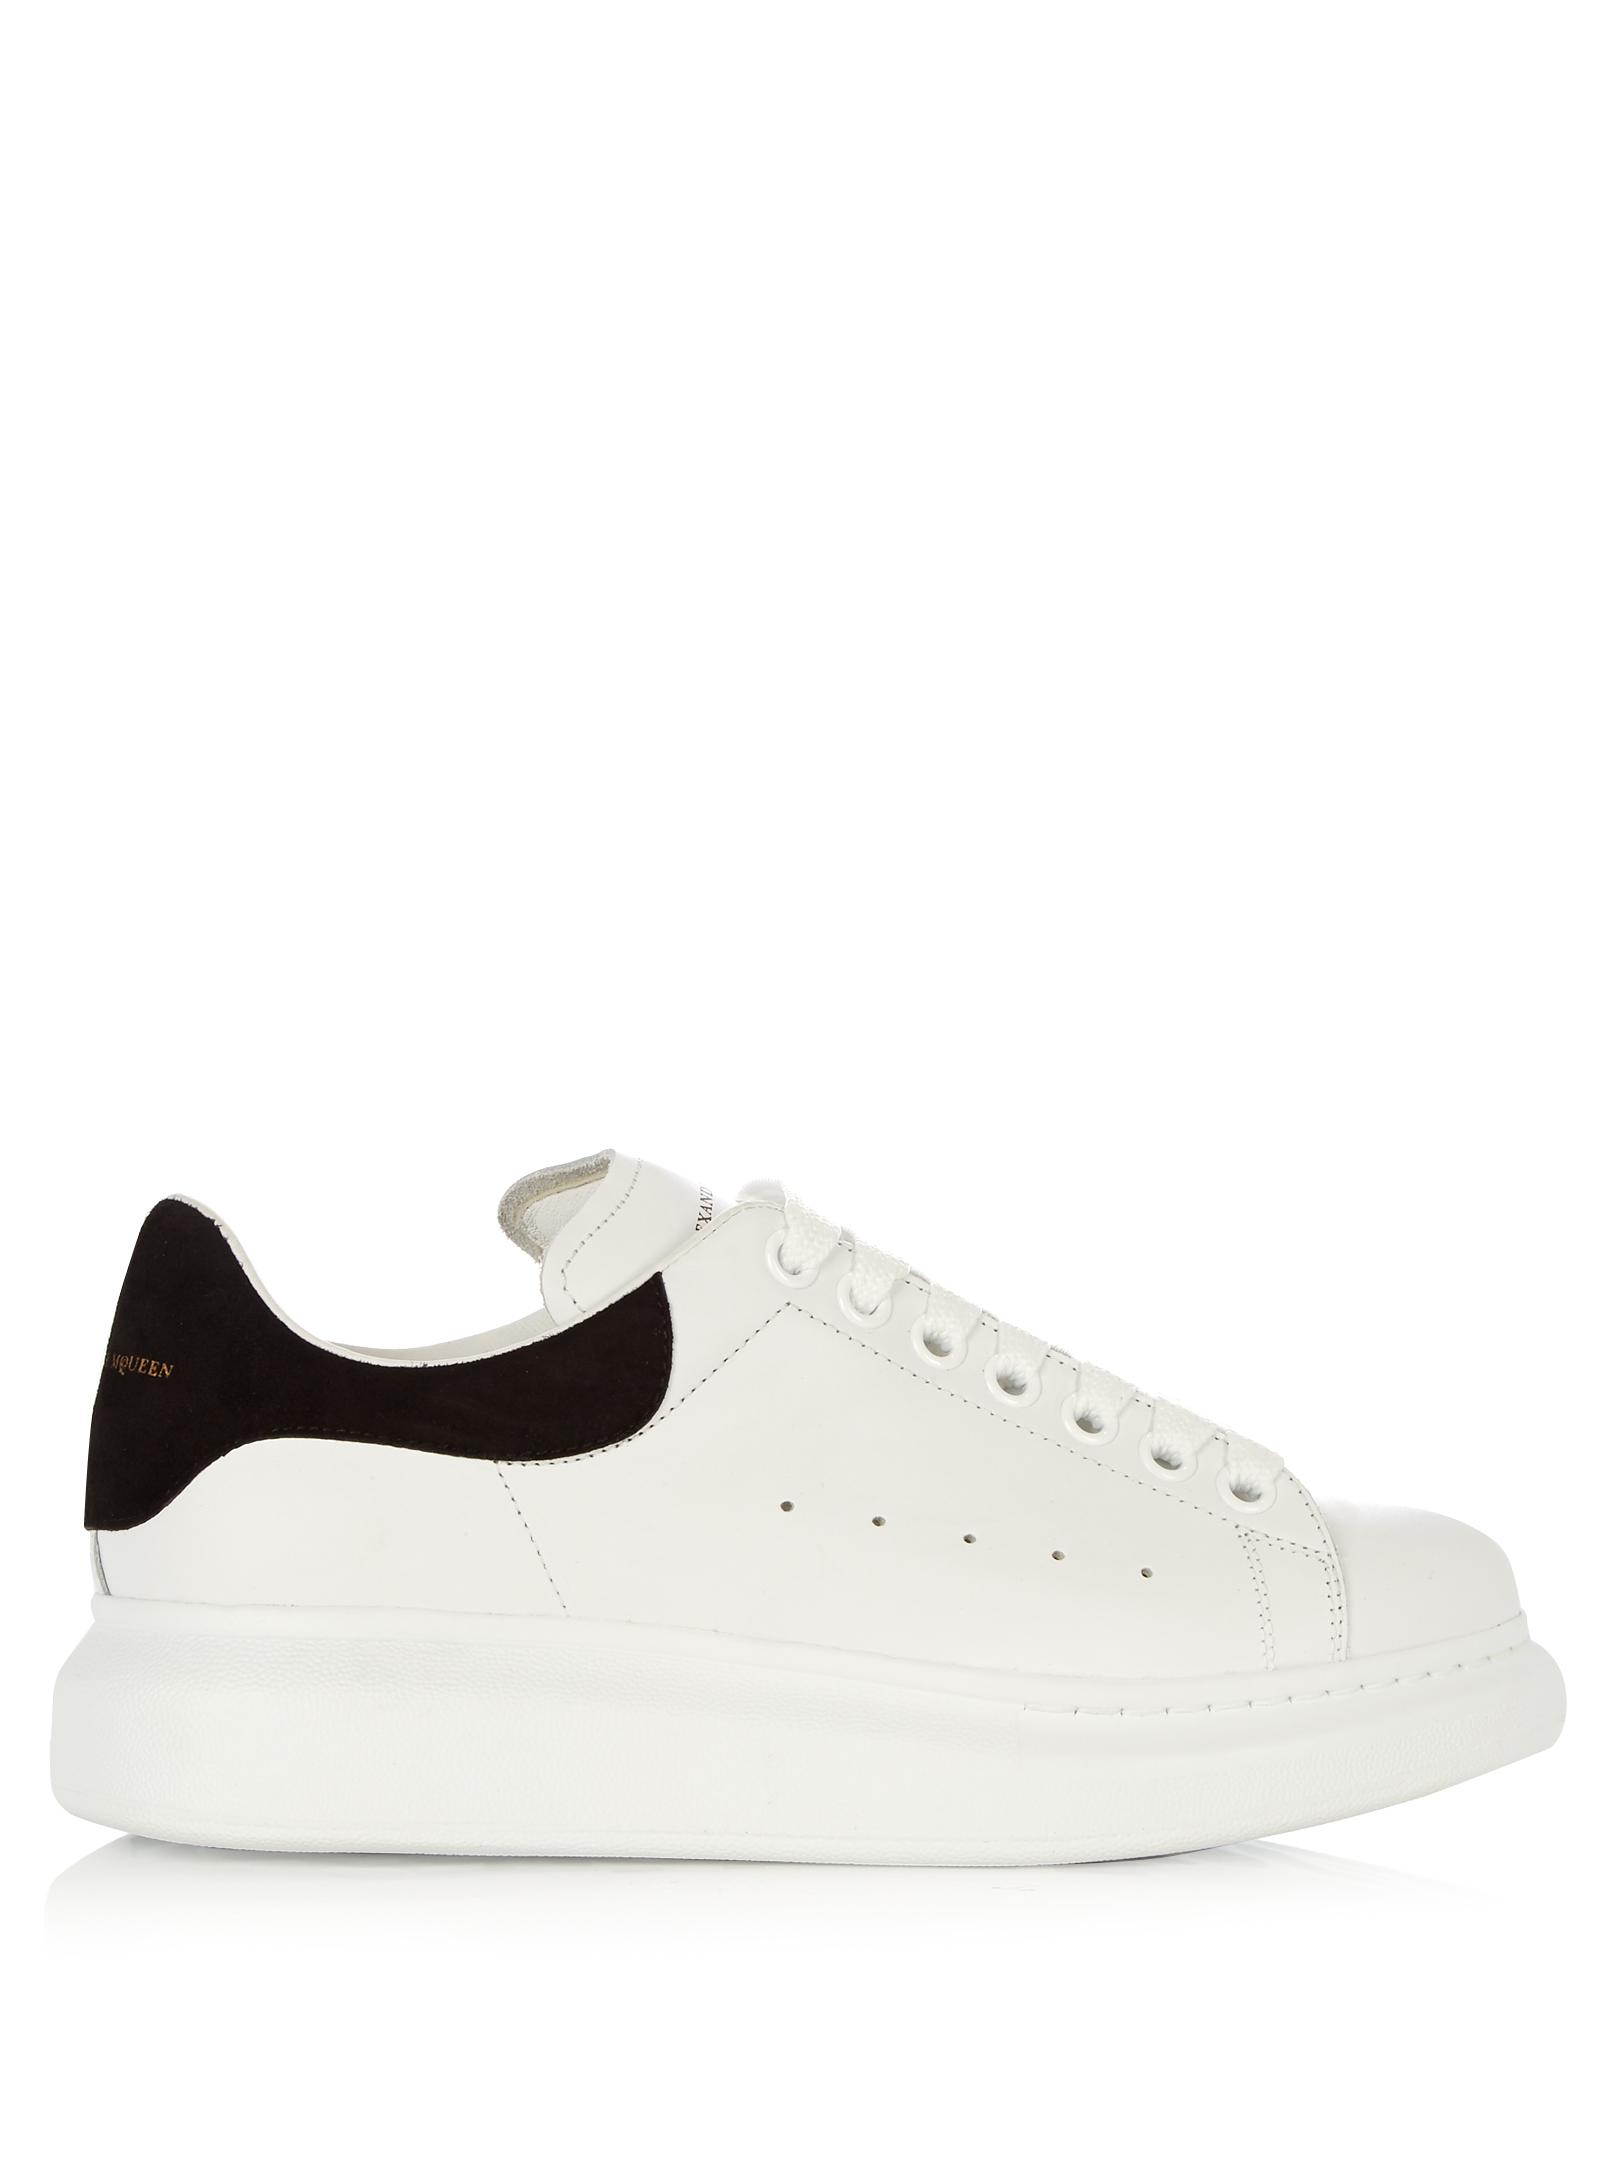 Alexander McQueen Black/White 38 Oversized Sneakers Tail Low-top Platform Sneakers Size US 8 Regular (M, B)